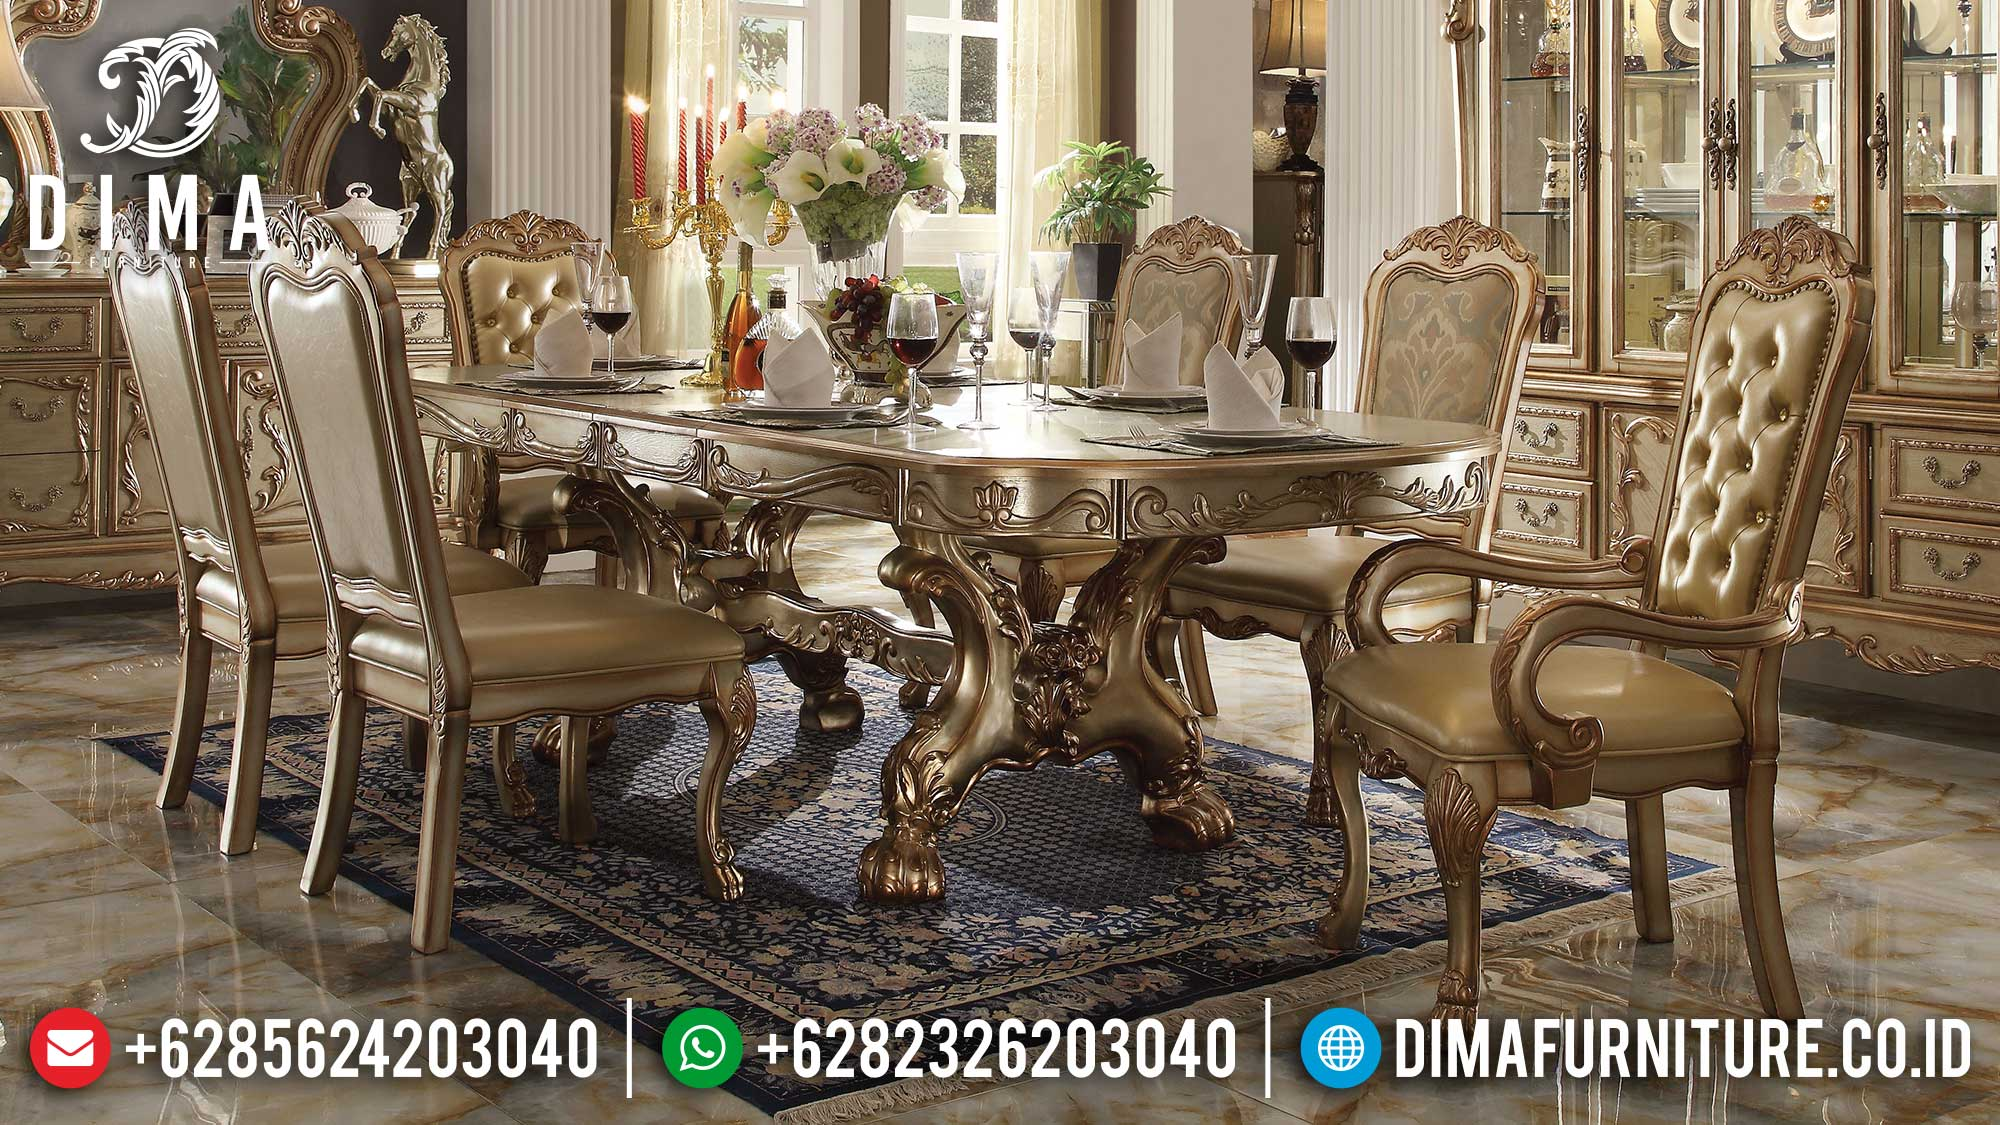 Meja Makan Mewah Mewah Kursi 6 Luxury Soft Golden Duco Color Mebel Jepara St-1253